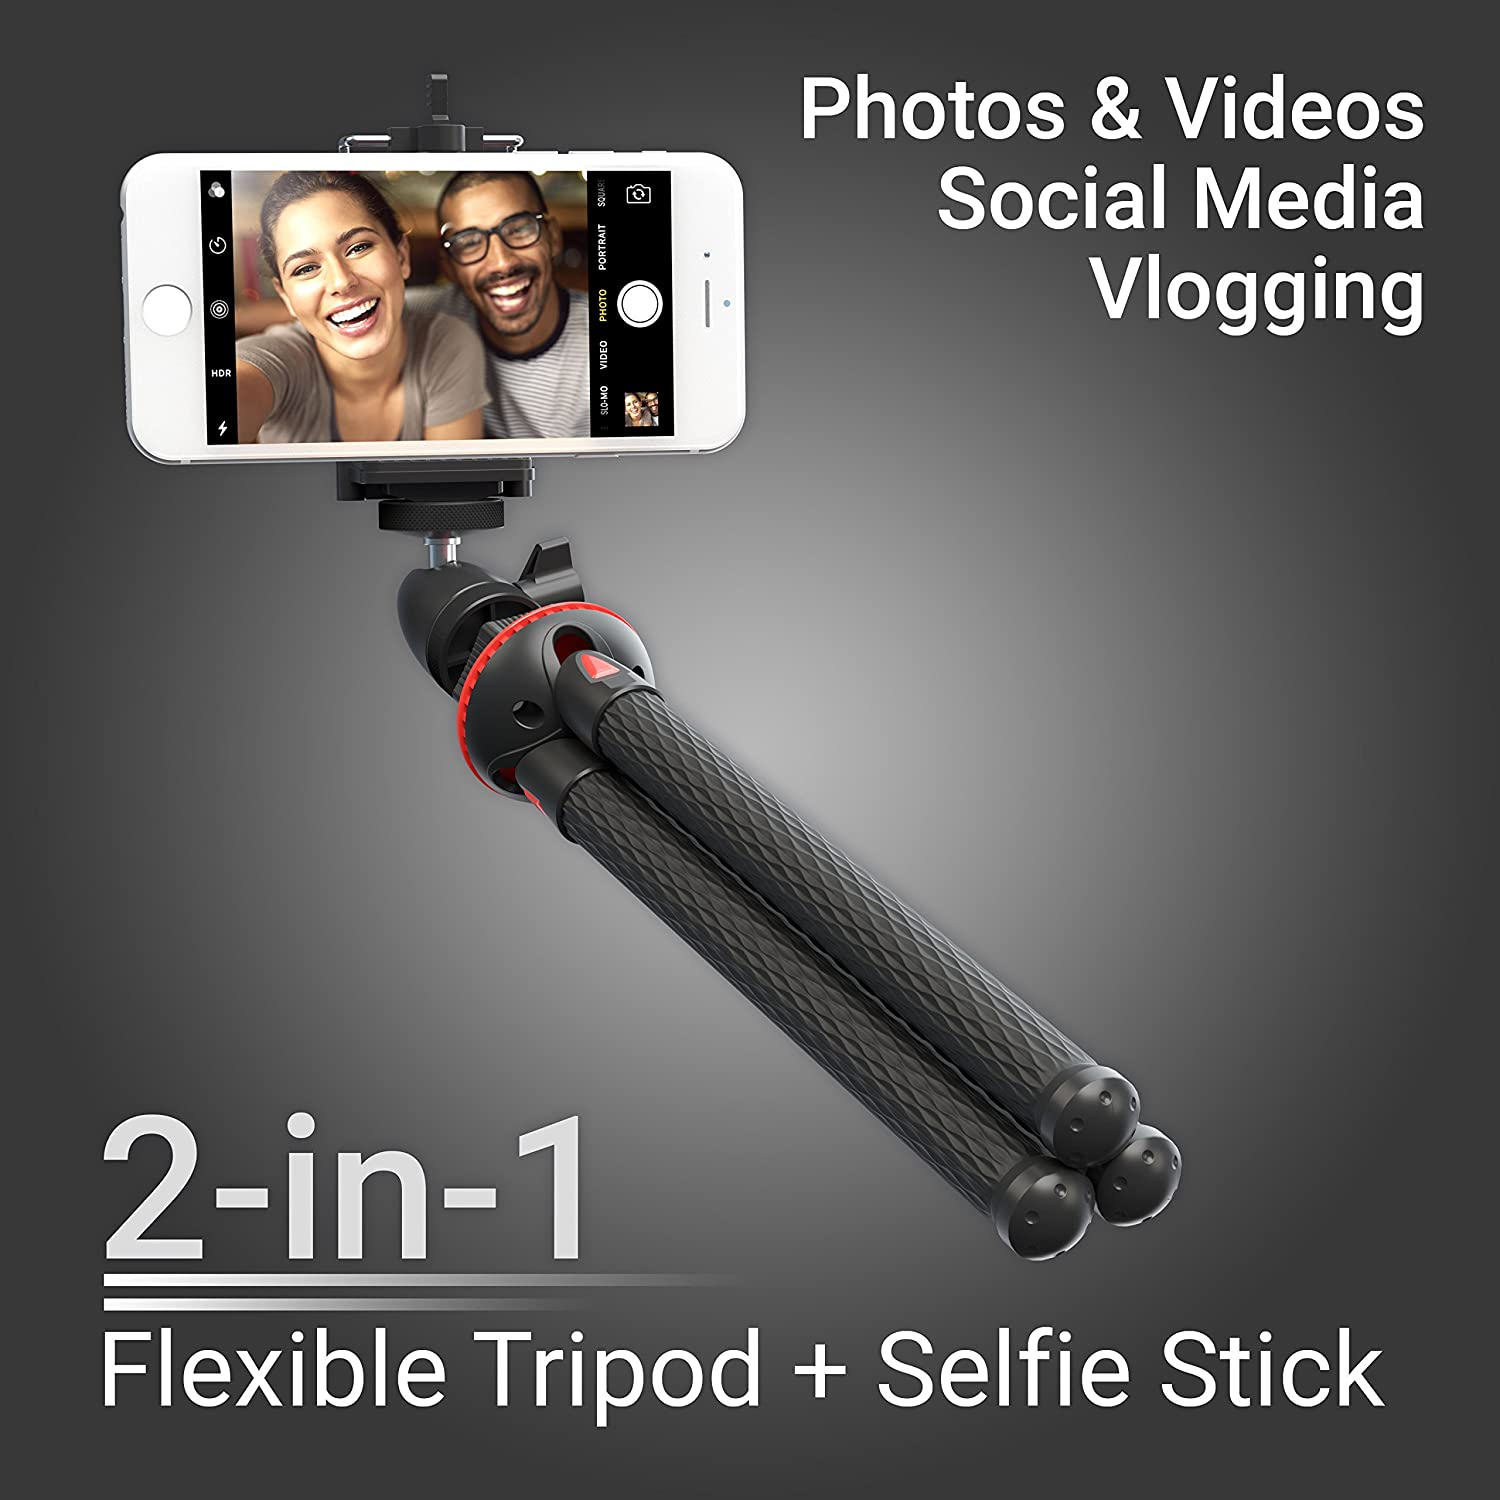 Xenvo SquidGrip Flexible Cell Phone Tripod GoPro Tripod Stand Compatible with iPhone Portable Smartphone and Action Camera Holder Android Samsung Google Pixel and All Mobile Phones